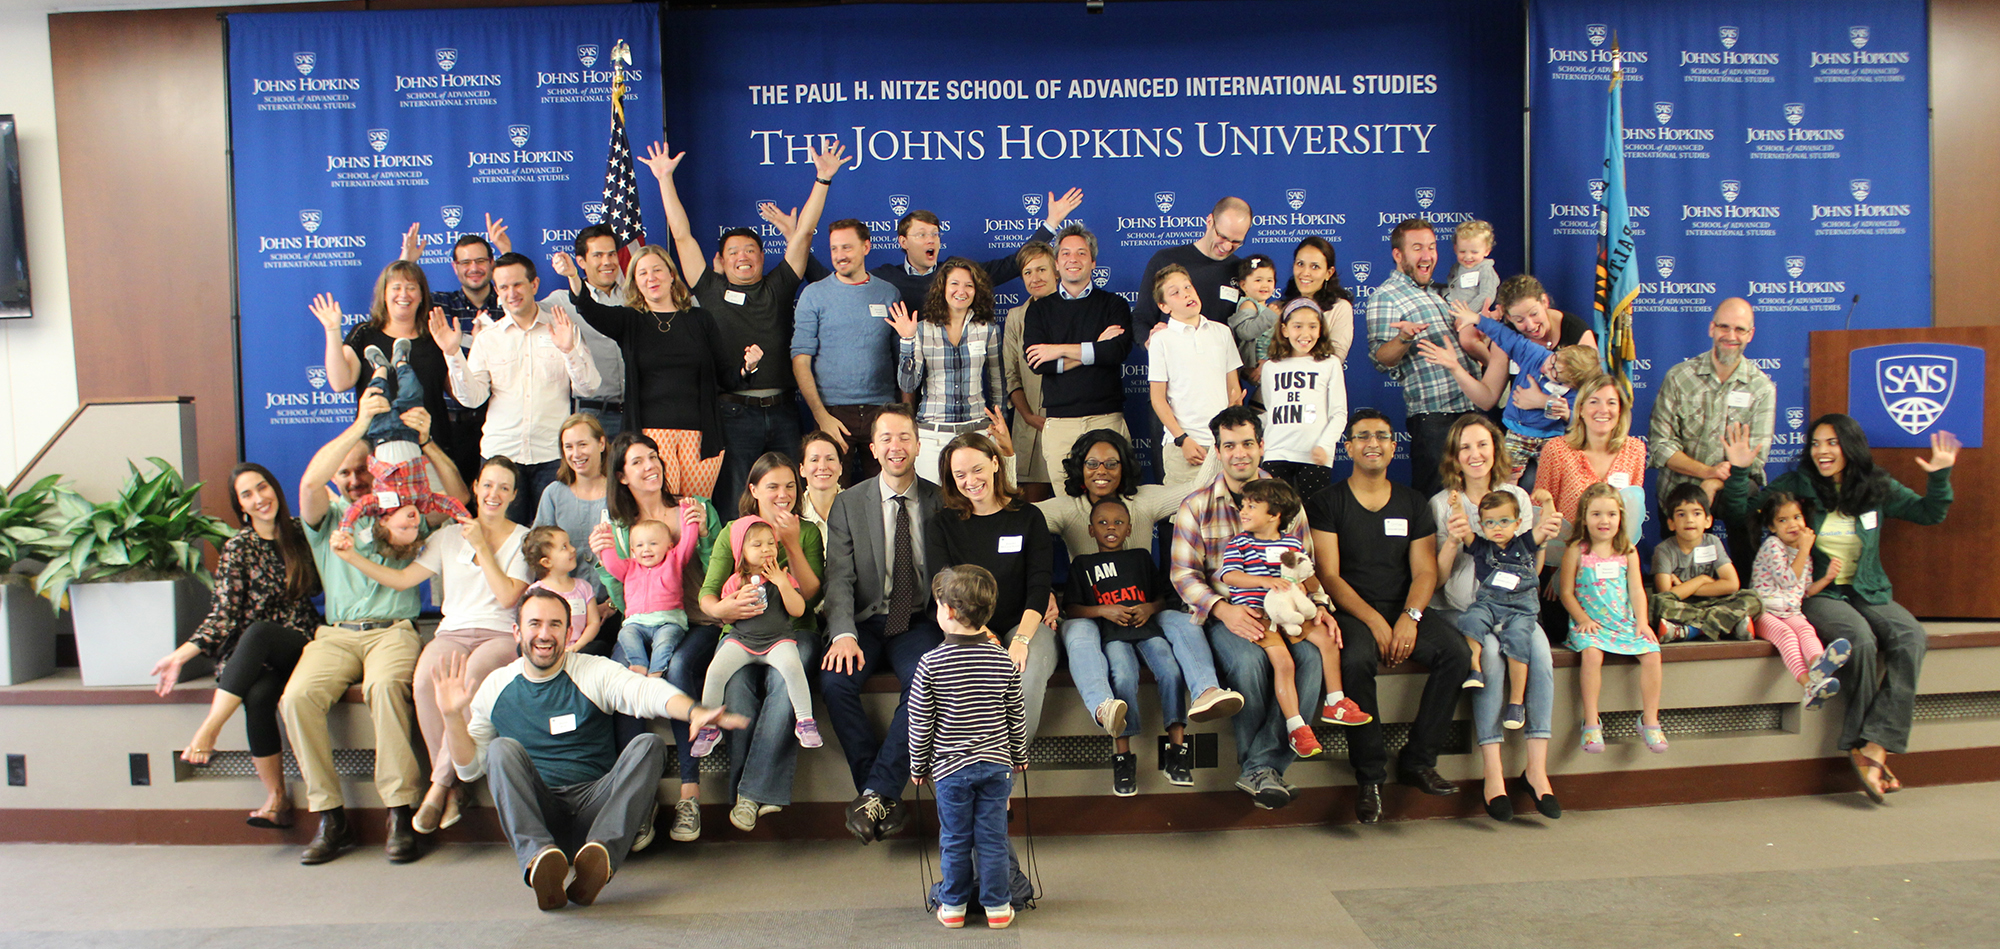 Members of the Class of 2007 and their families celebrate their 10th reunion in Washington, DC.